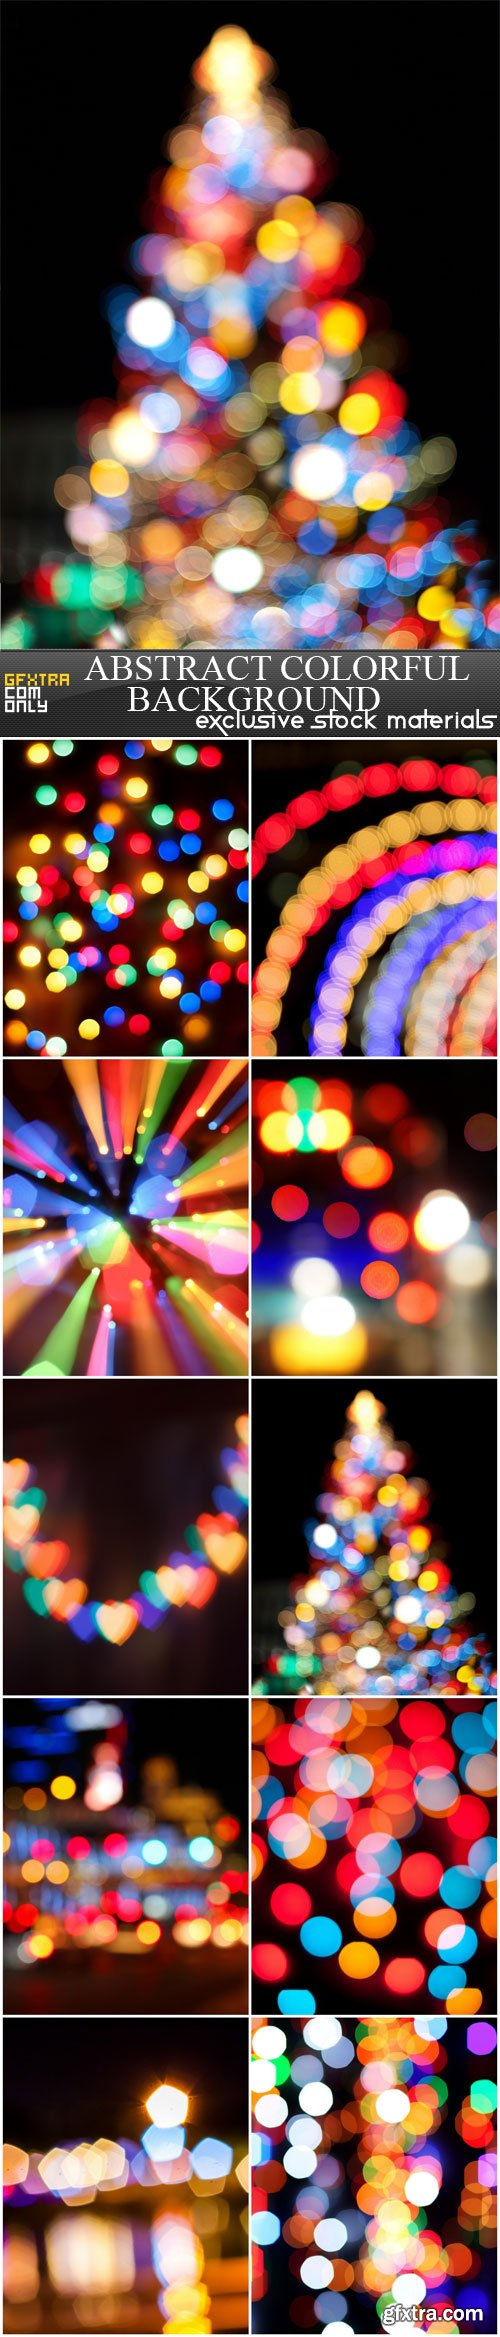 Abstract colorful background, 10 UHQ JPEG